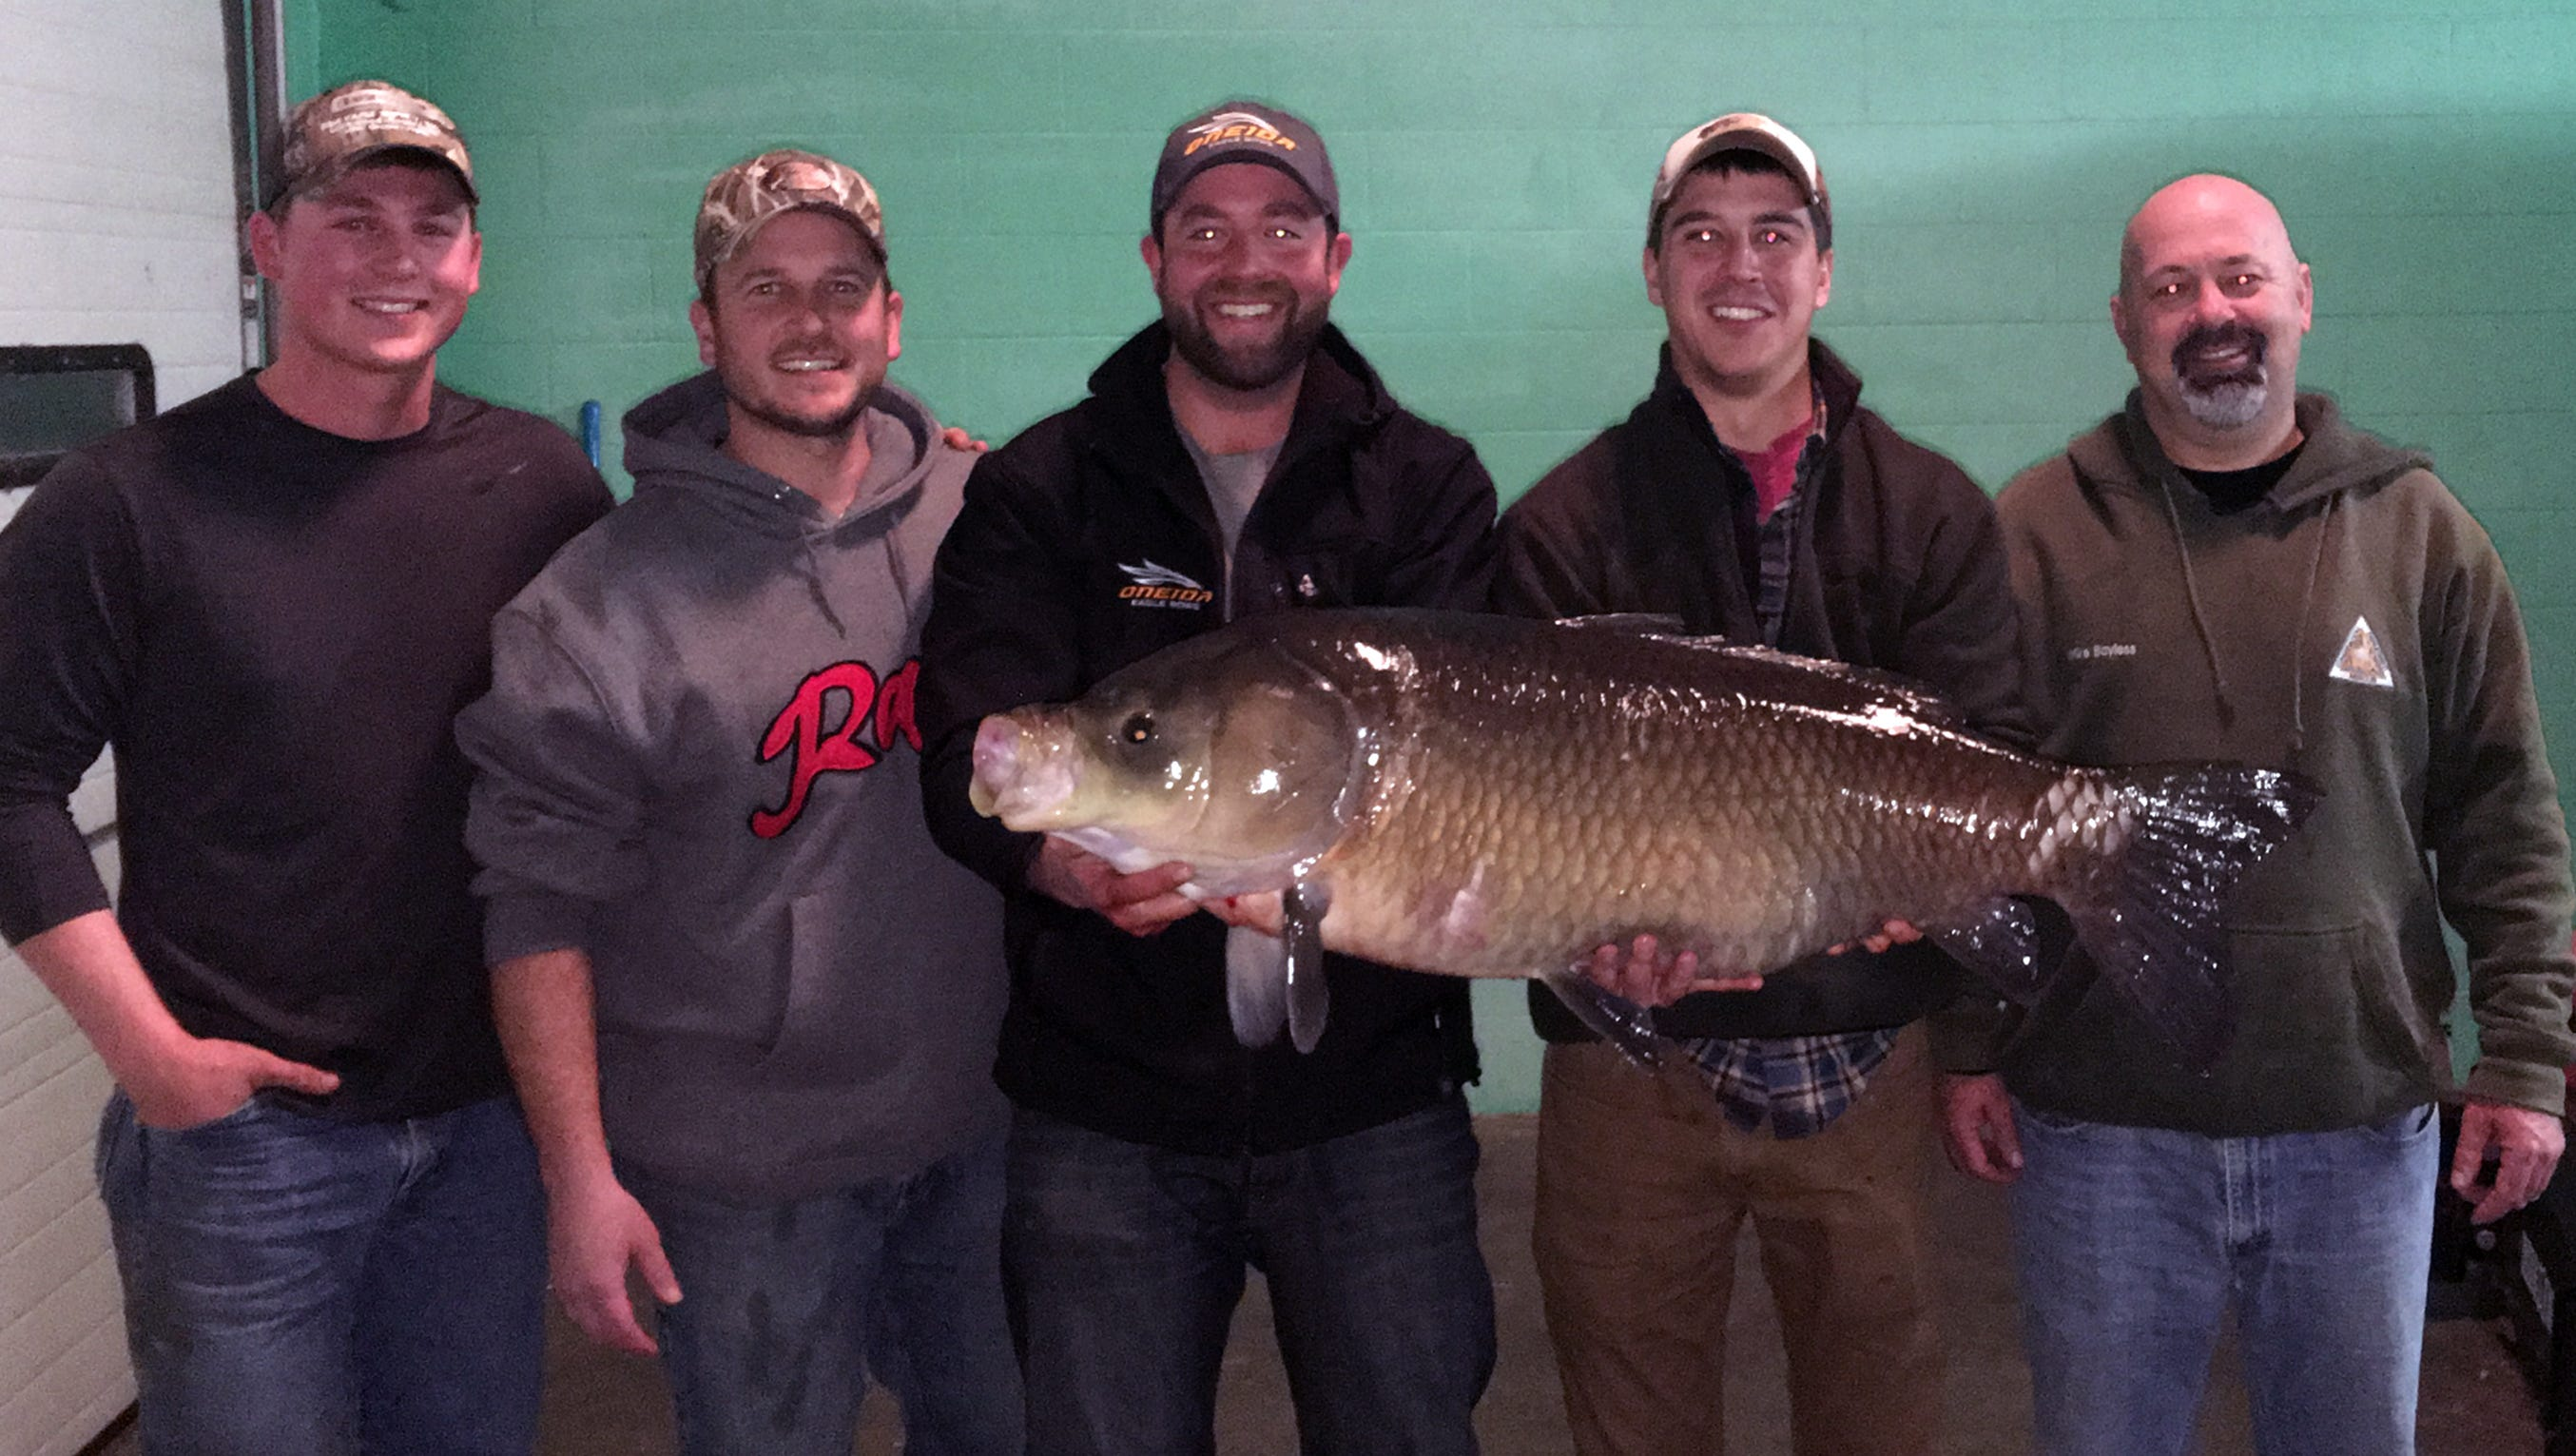 son of bass pro shops founder breaks mo  bowfishing record